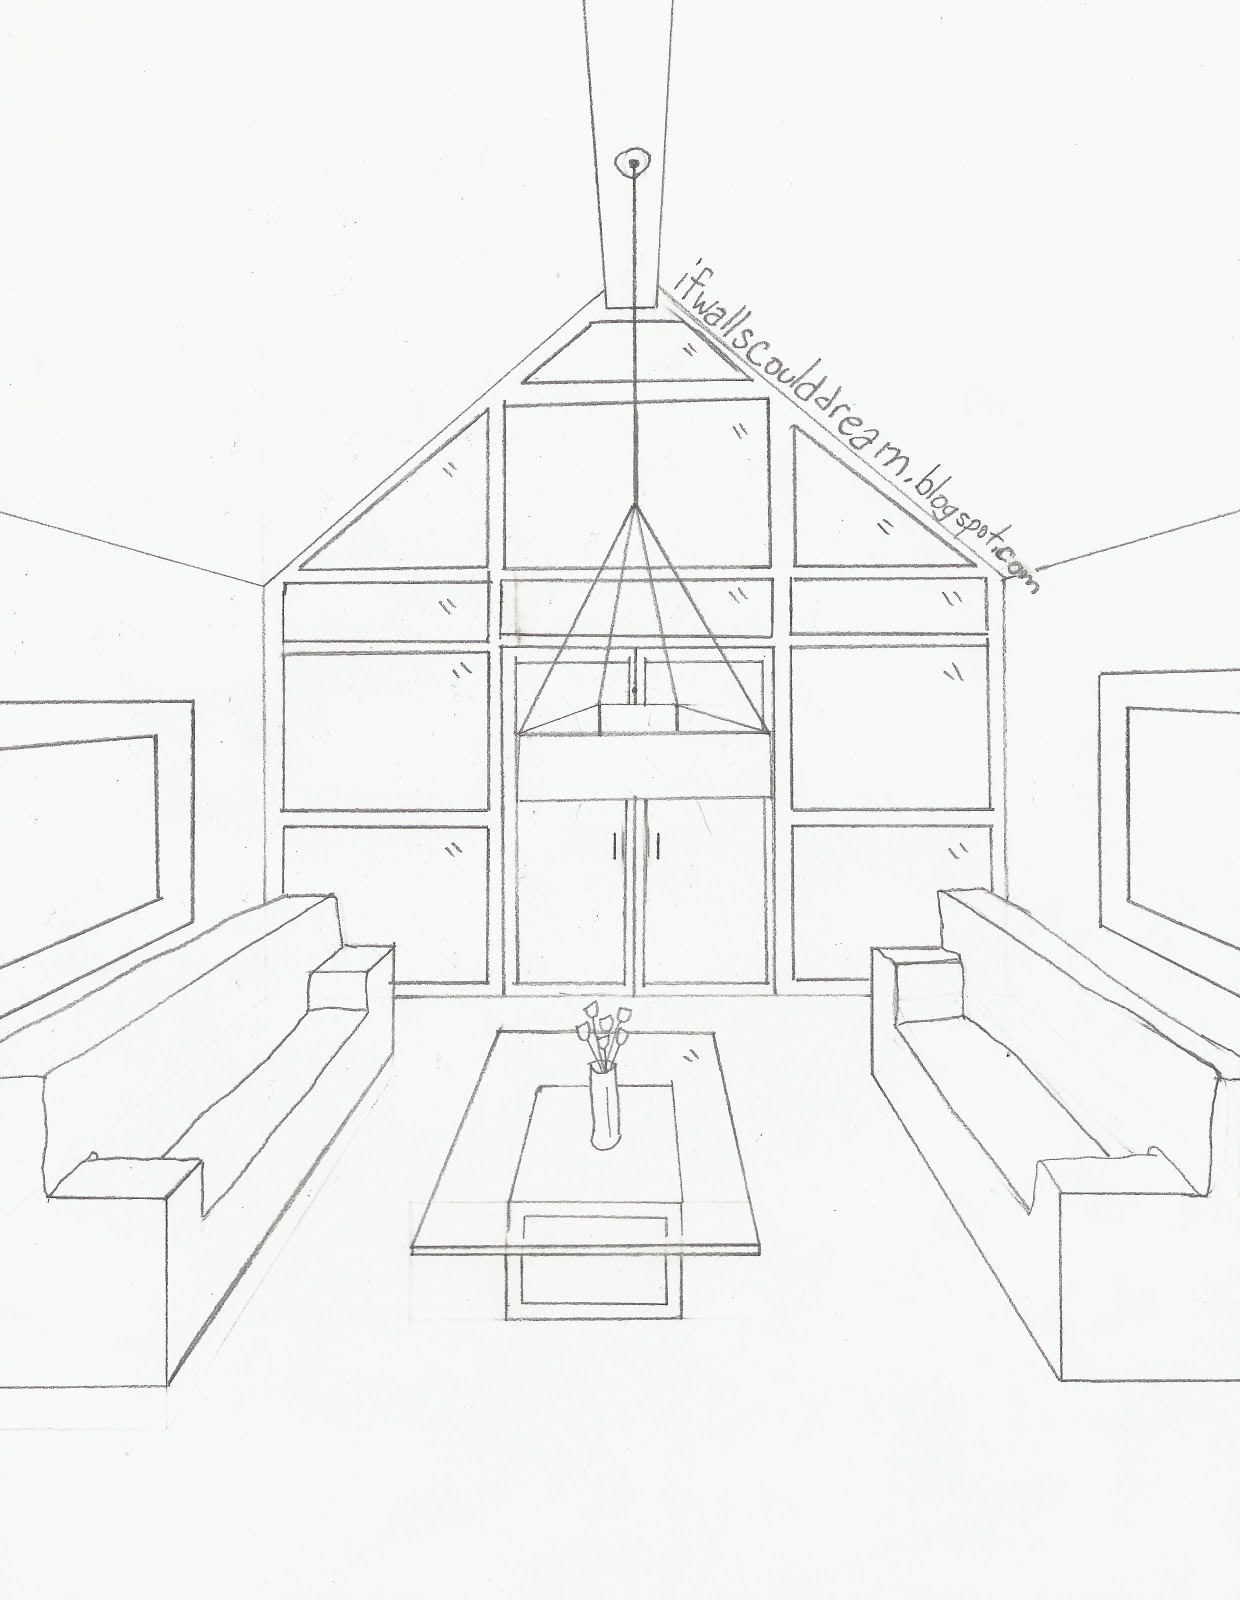 House Interior Drawing at GetDrawings.com | Free for personal use ...